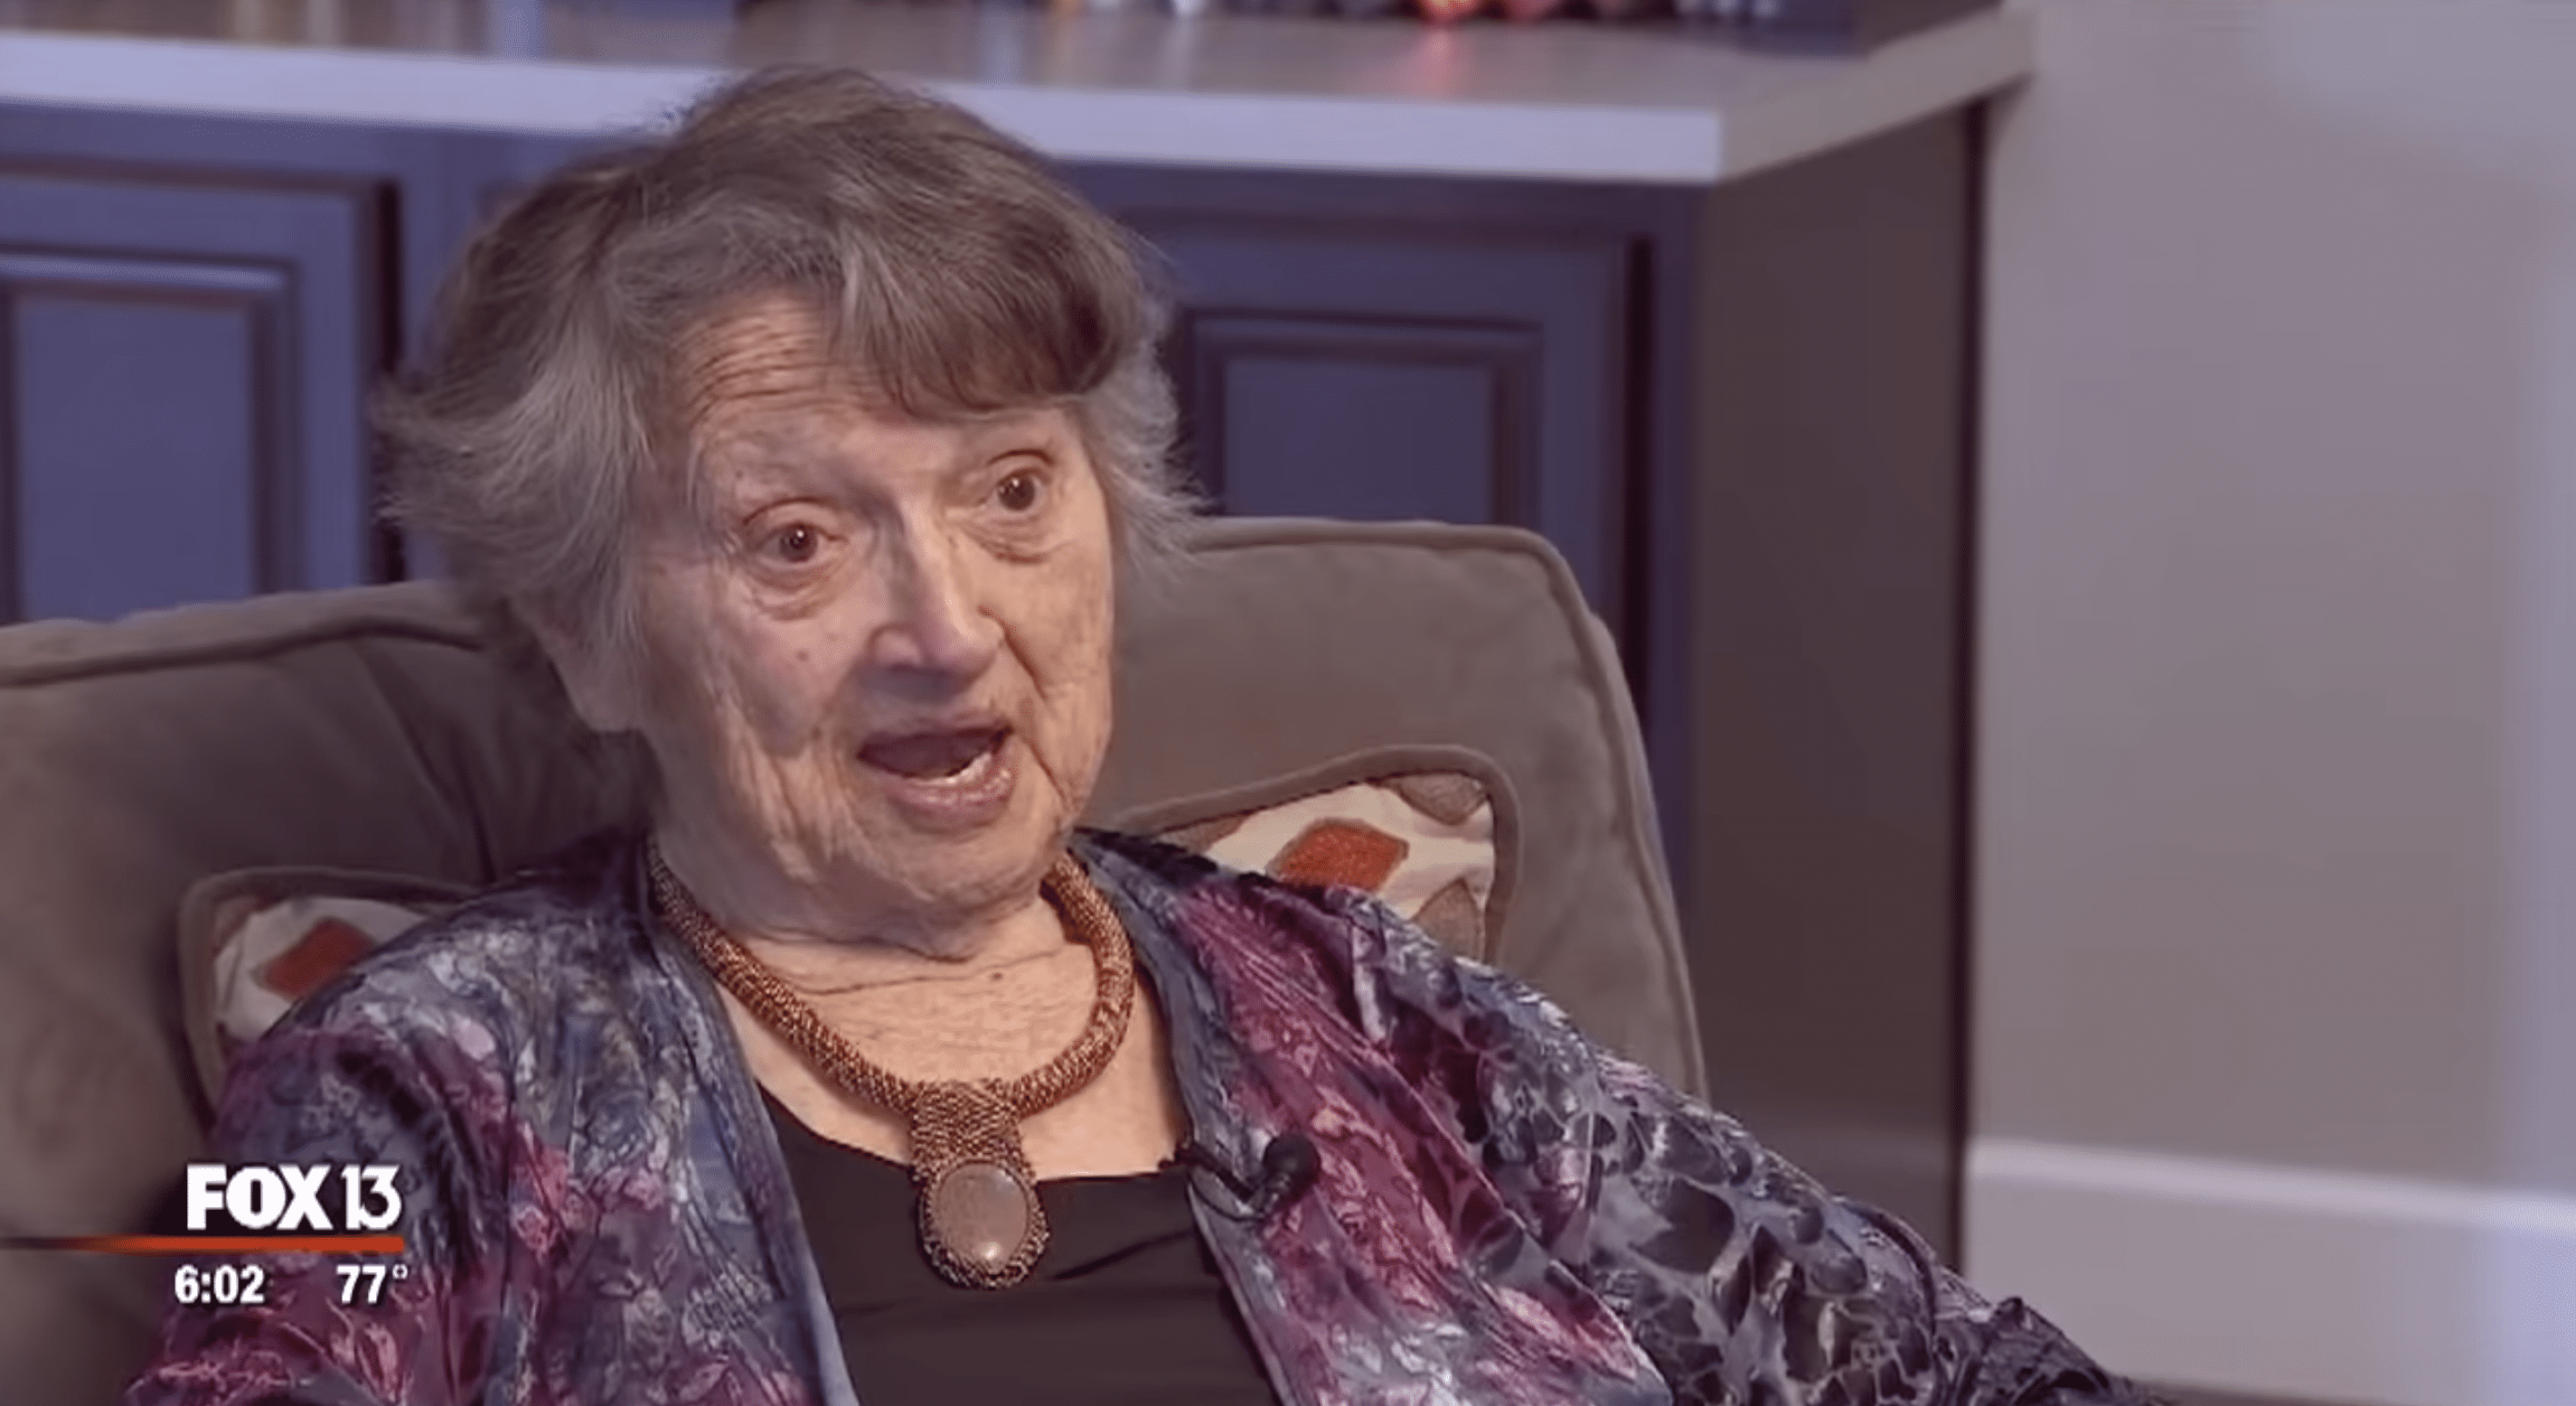 The then 88-year-old Genevieve Purinton shared how she had spent her life thinking her daughter died at birth. | Photo: youtube.com/FOX 13 Tampa Bay